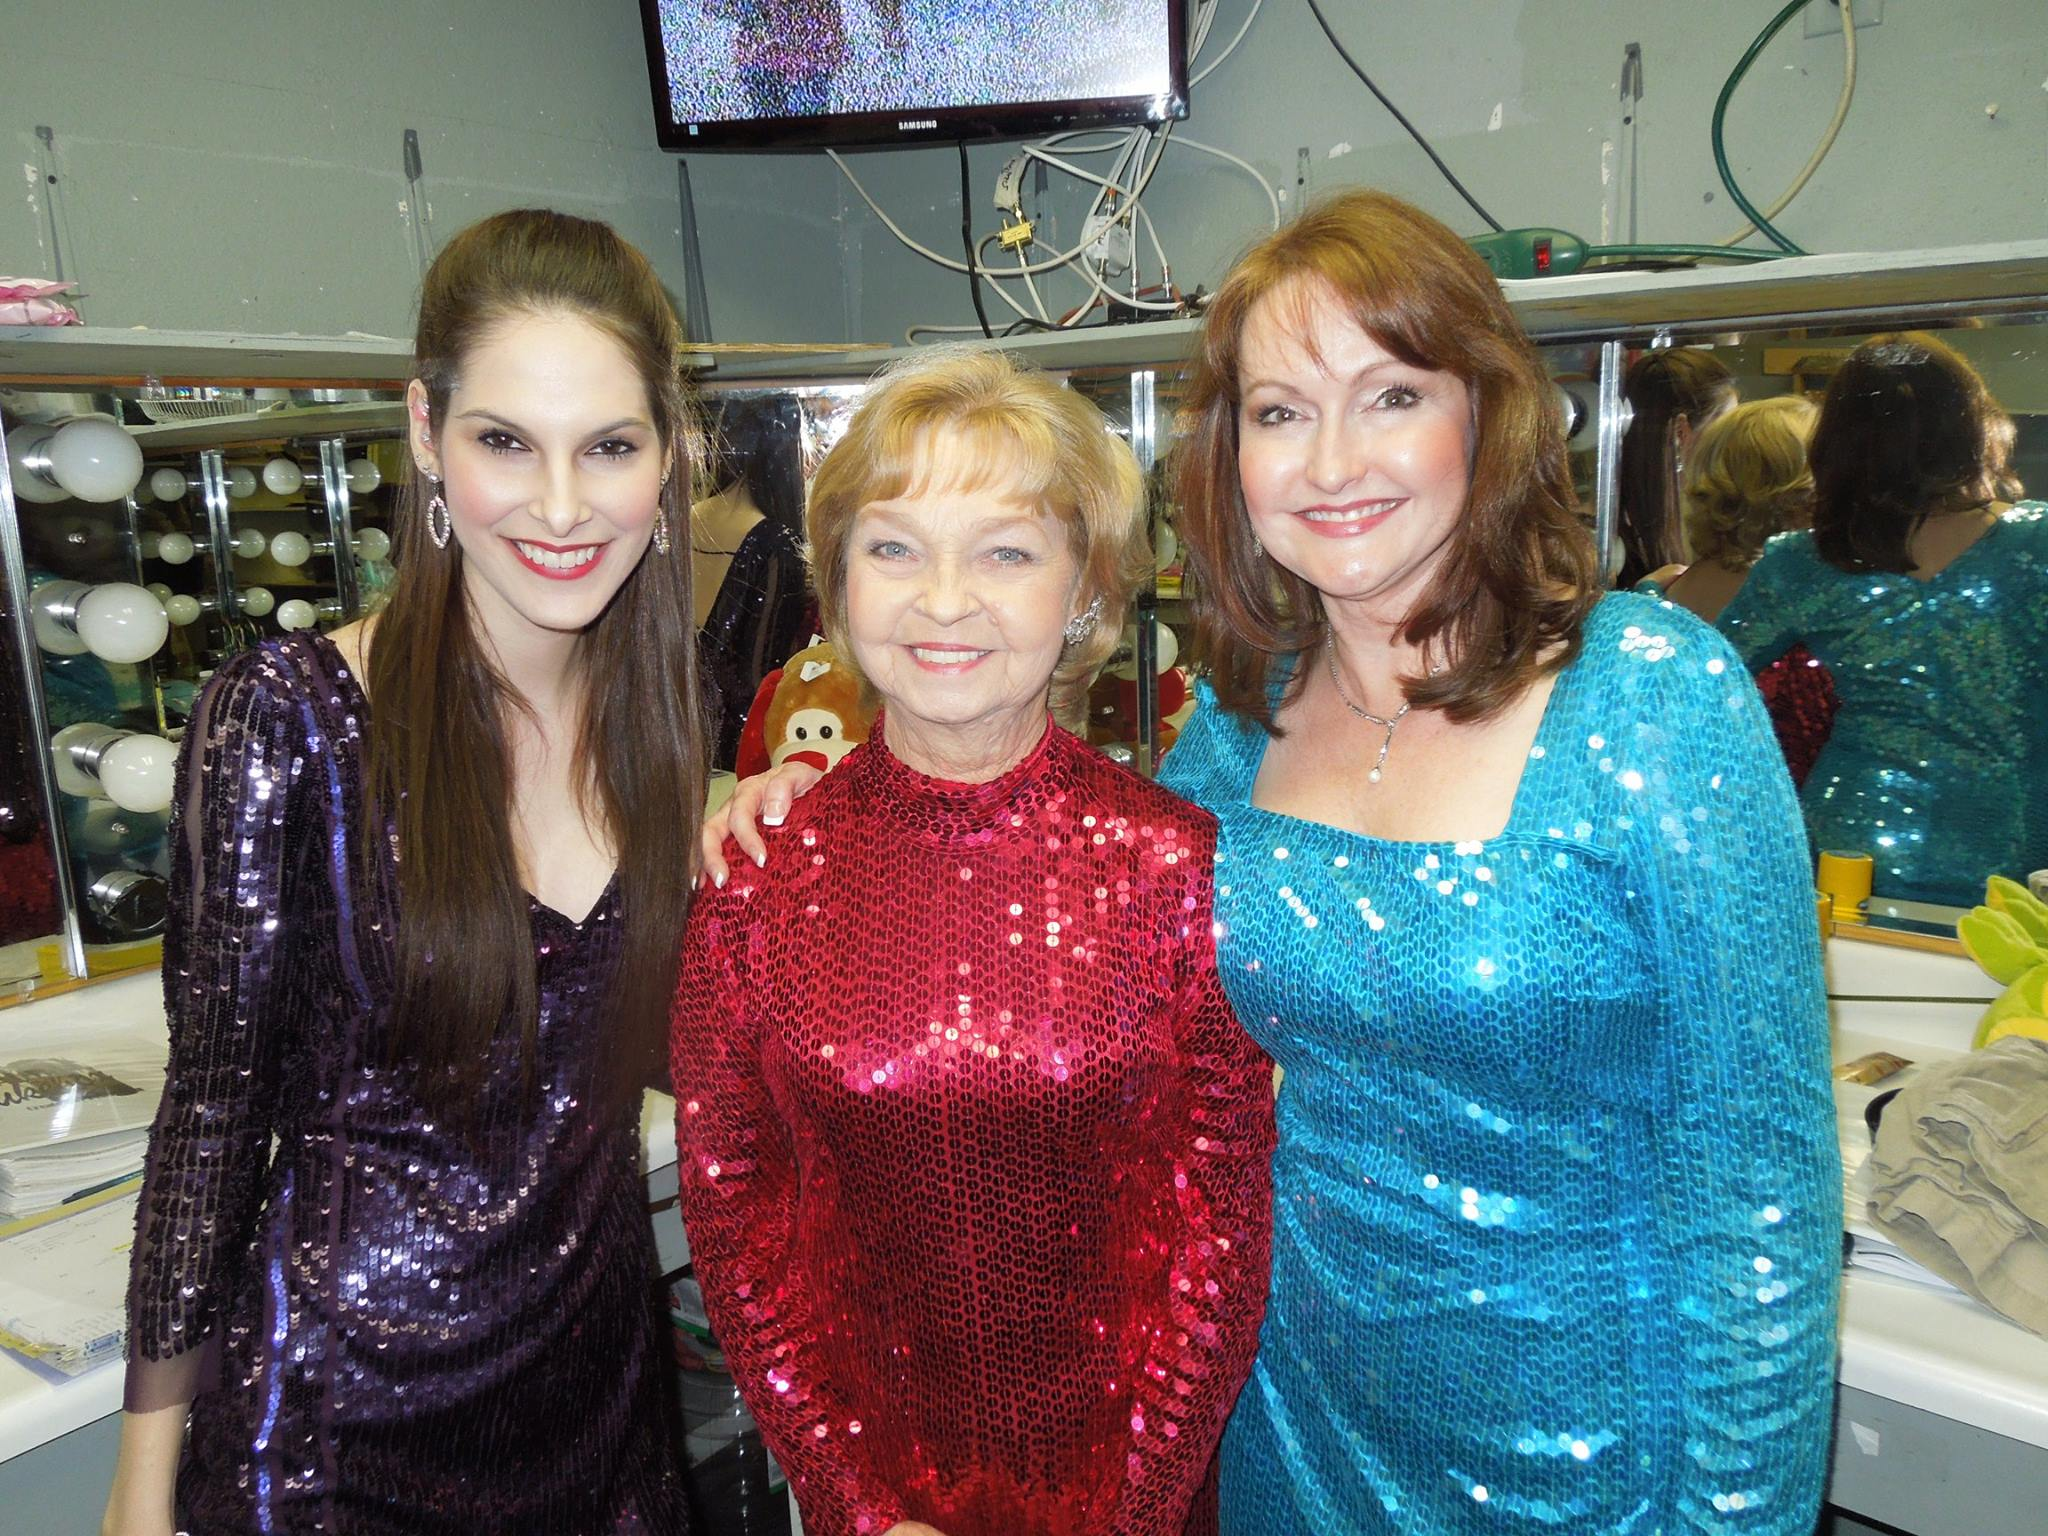 Jacqui Notorio, Noel Irick and Janine Smith pose for the camera in their dressing room at Fountain Hills Theatre. 2014. Photographer not known.